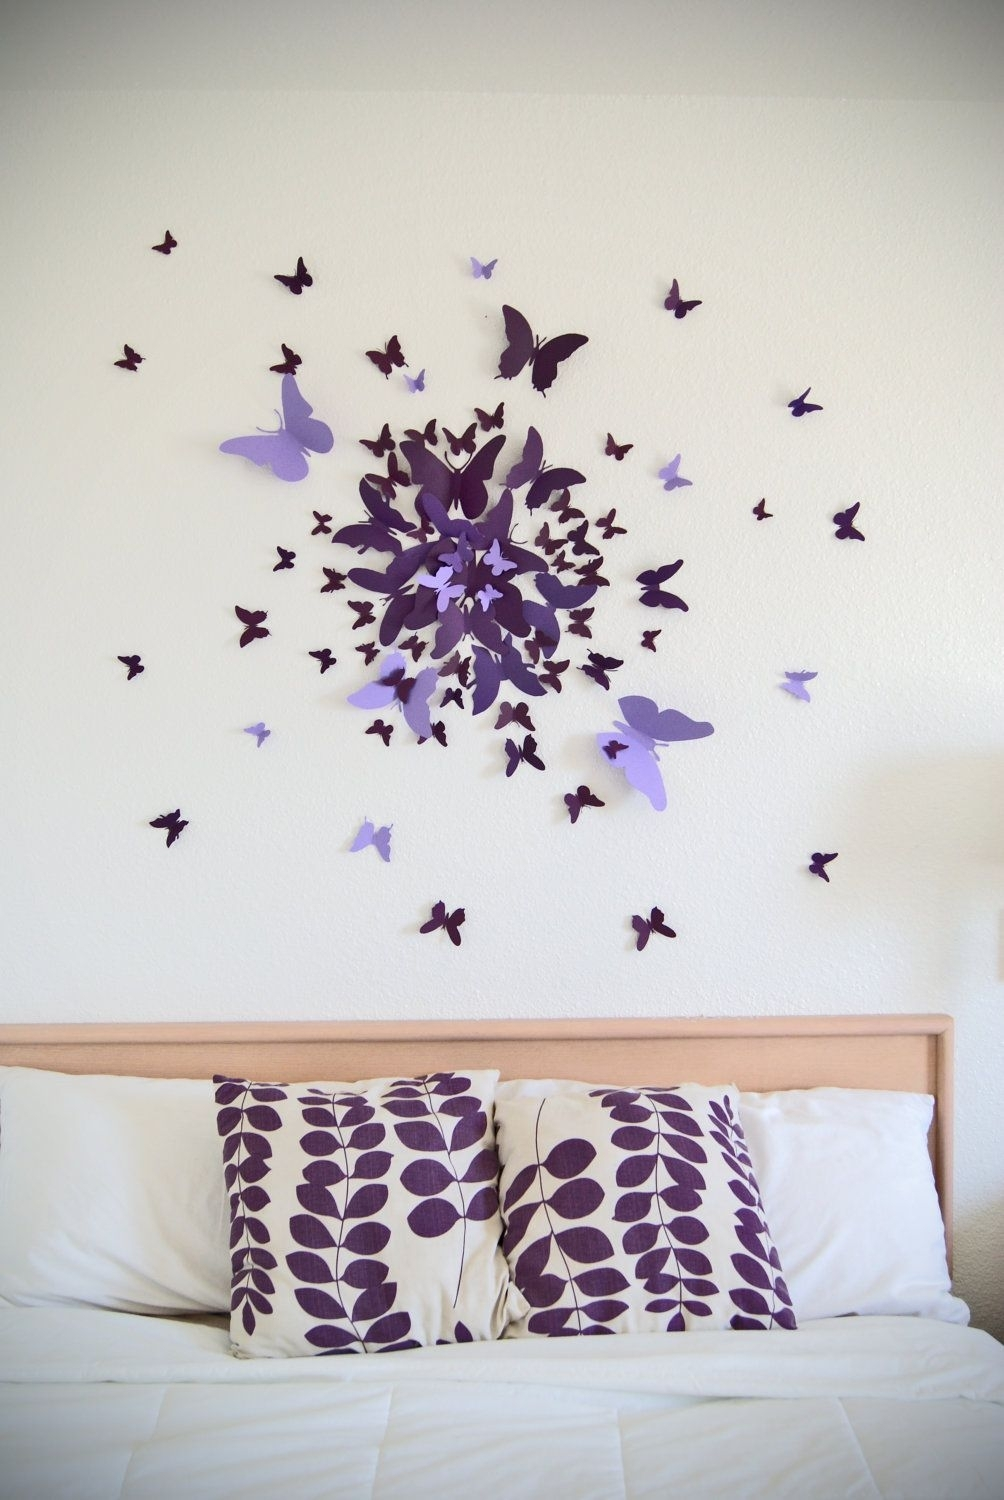 3D Butterfly Wall Art Decal Set Of 70 In Purple, Paper Butterflies Regarding Butterfly Wall Art (Photo 3 of 20)